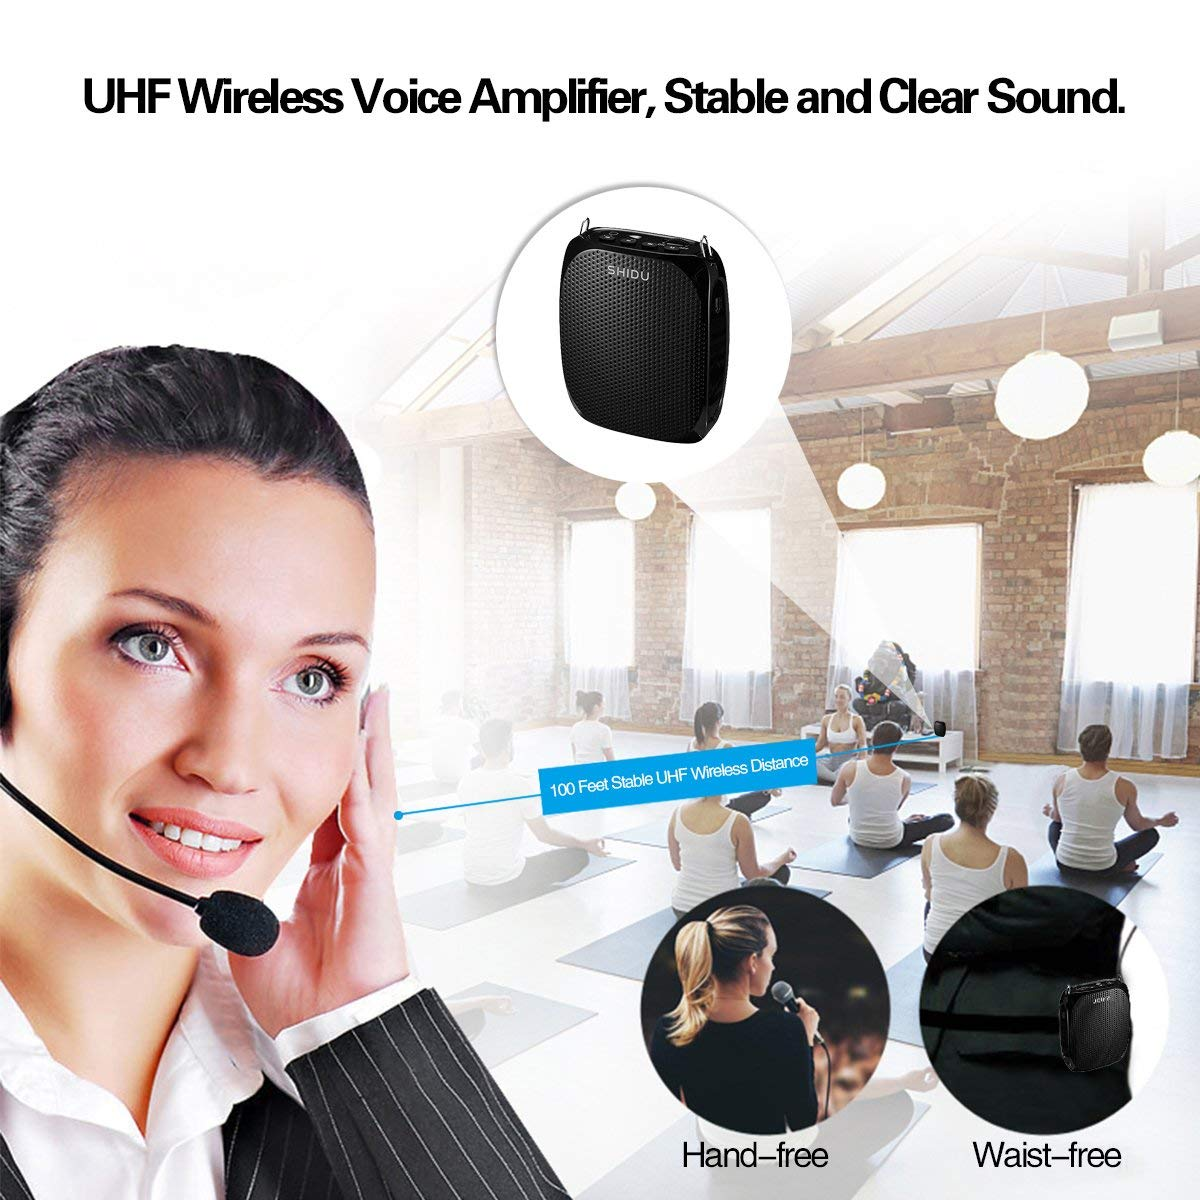 Wireless Voice Amplifier with UHF Microphone headset 10W Portable Loud Speaker Clear Sound for Teaching, Singing, Presentations, Tour, Speech and More, Black by SHIDU